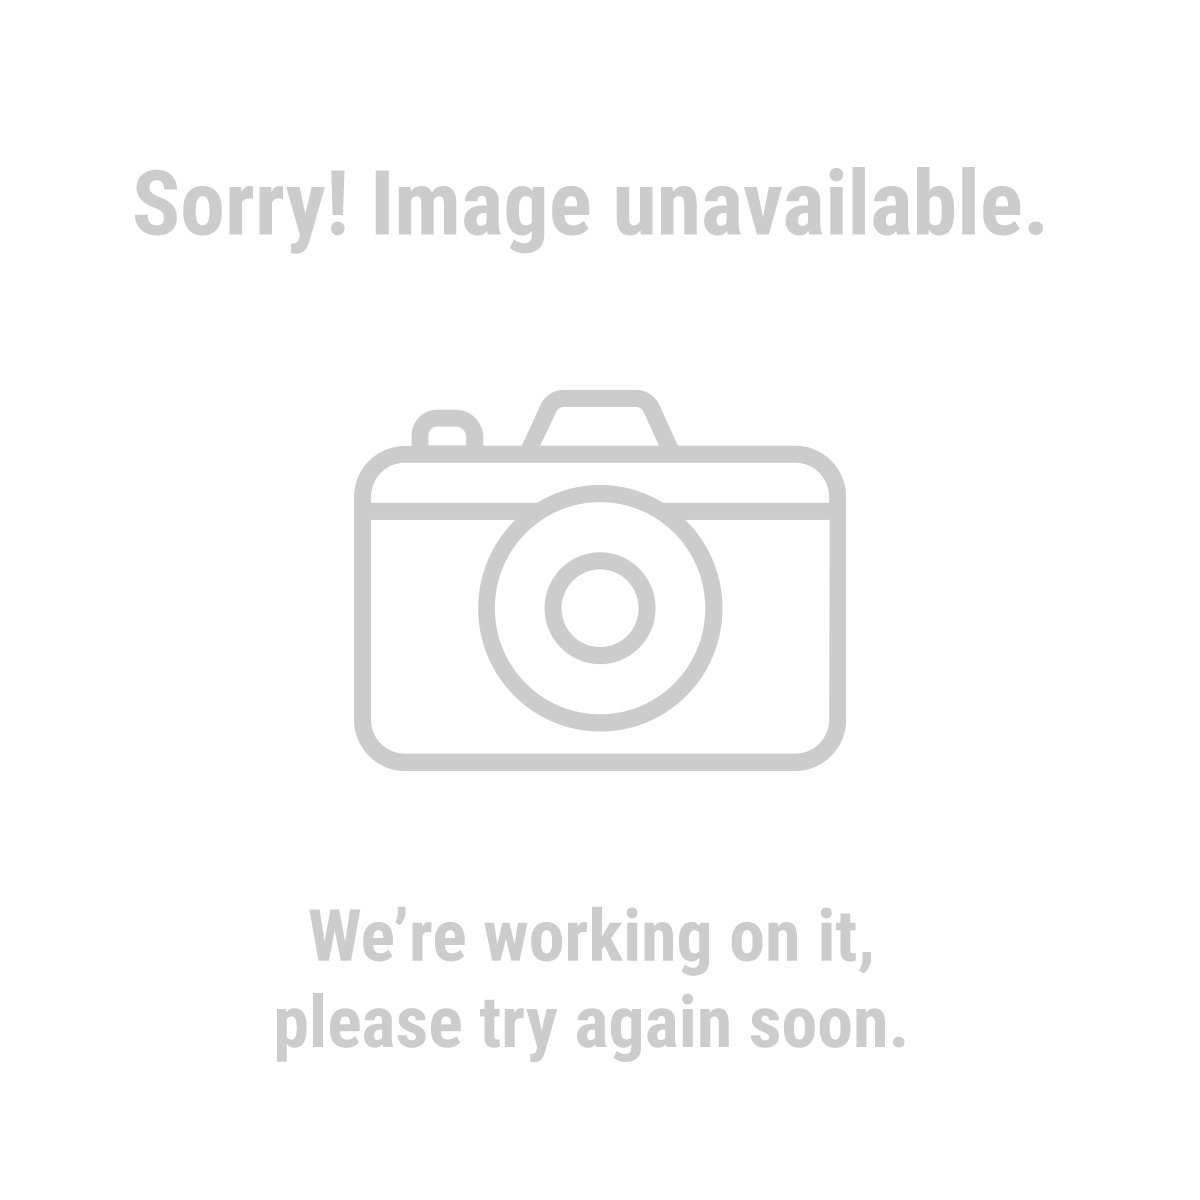 Central-Forge 4614 12 Piece Precision Needle File Set